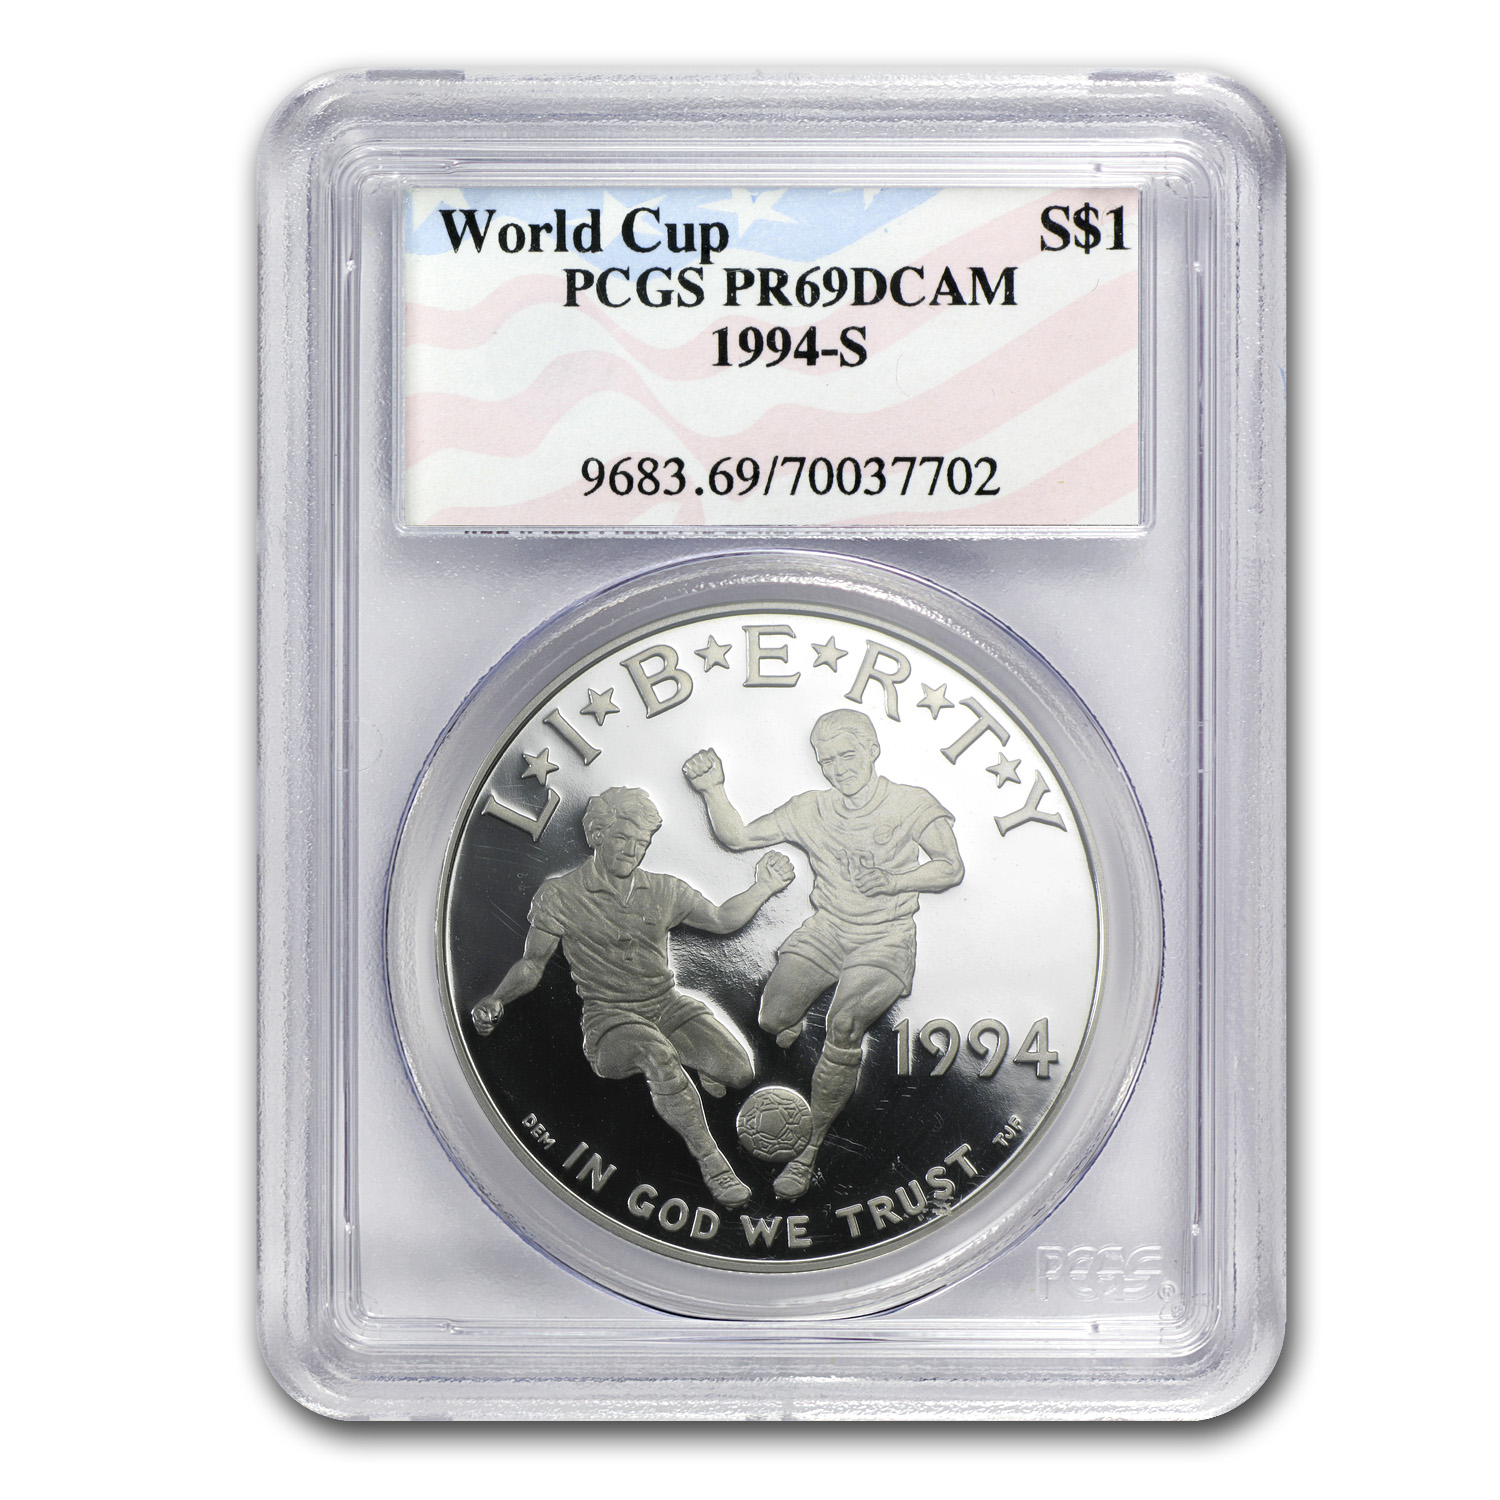 1994-S World Cup $1 Silver Commem PR-69 PCGS